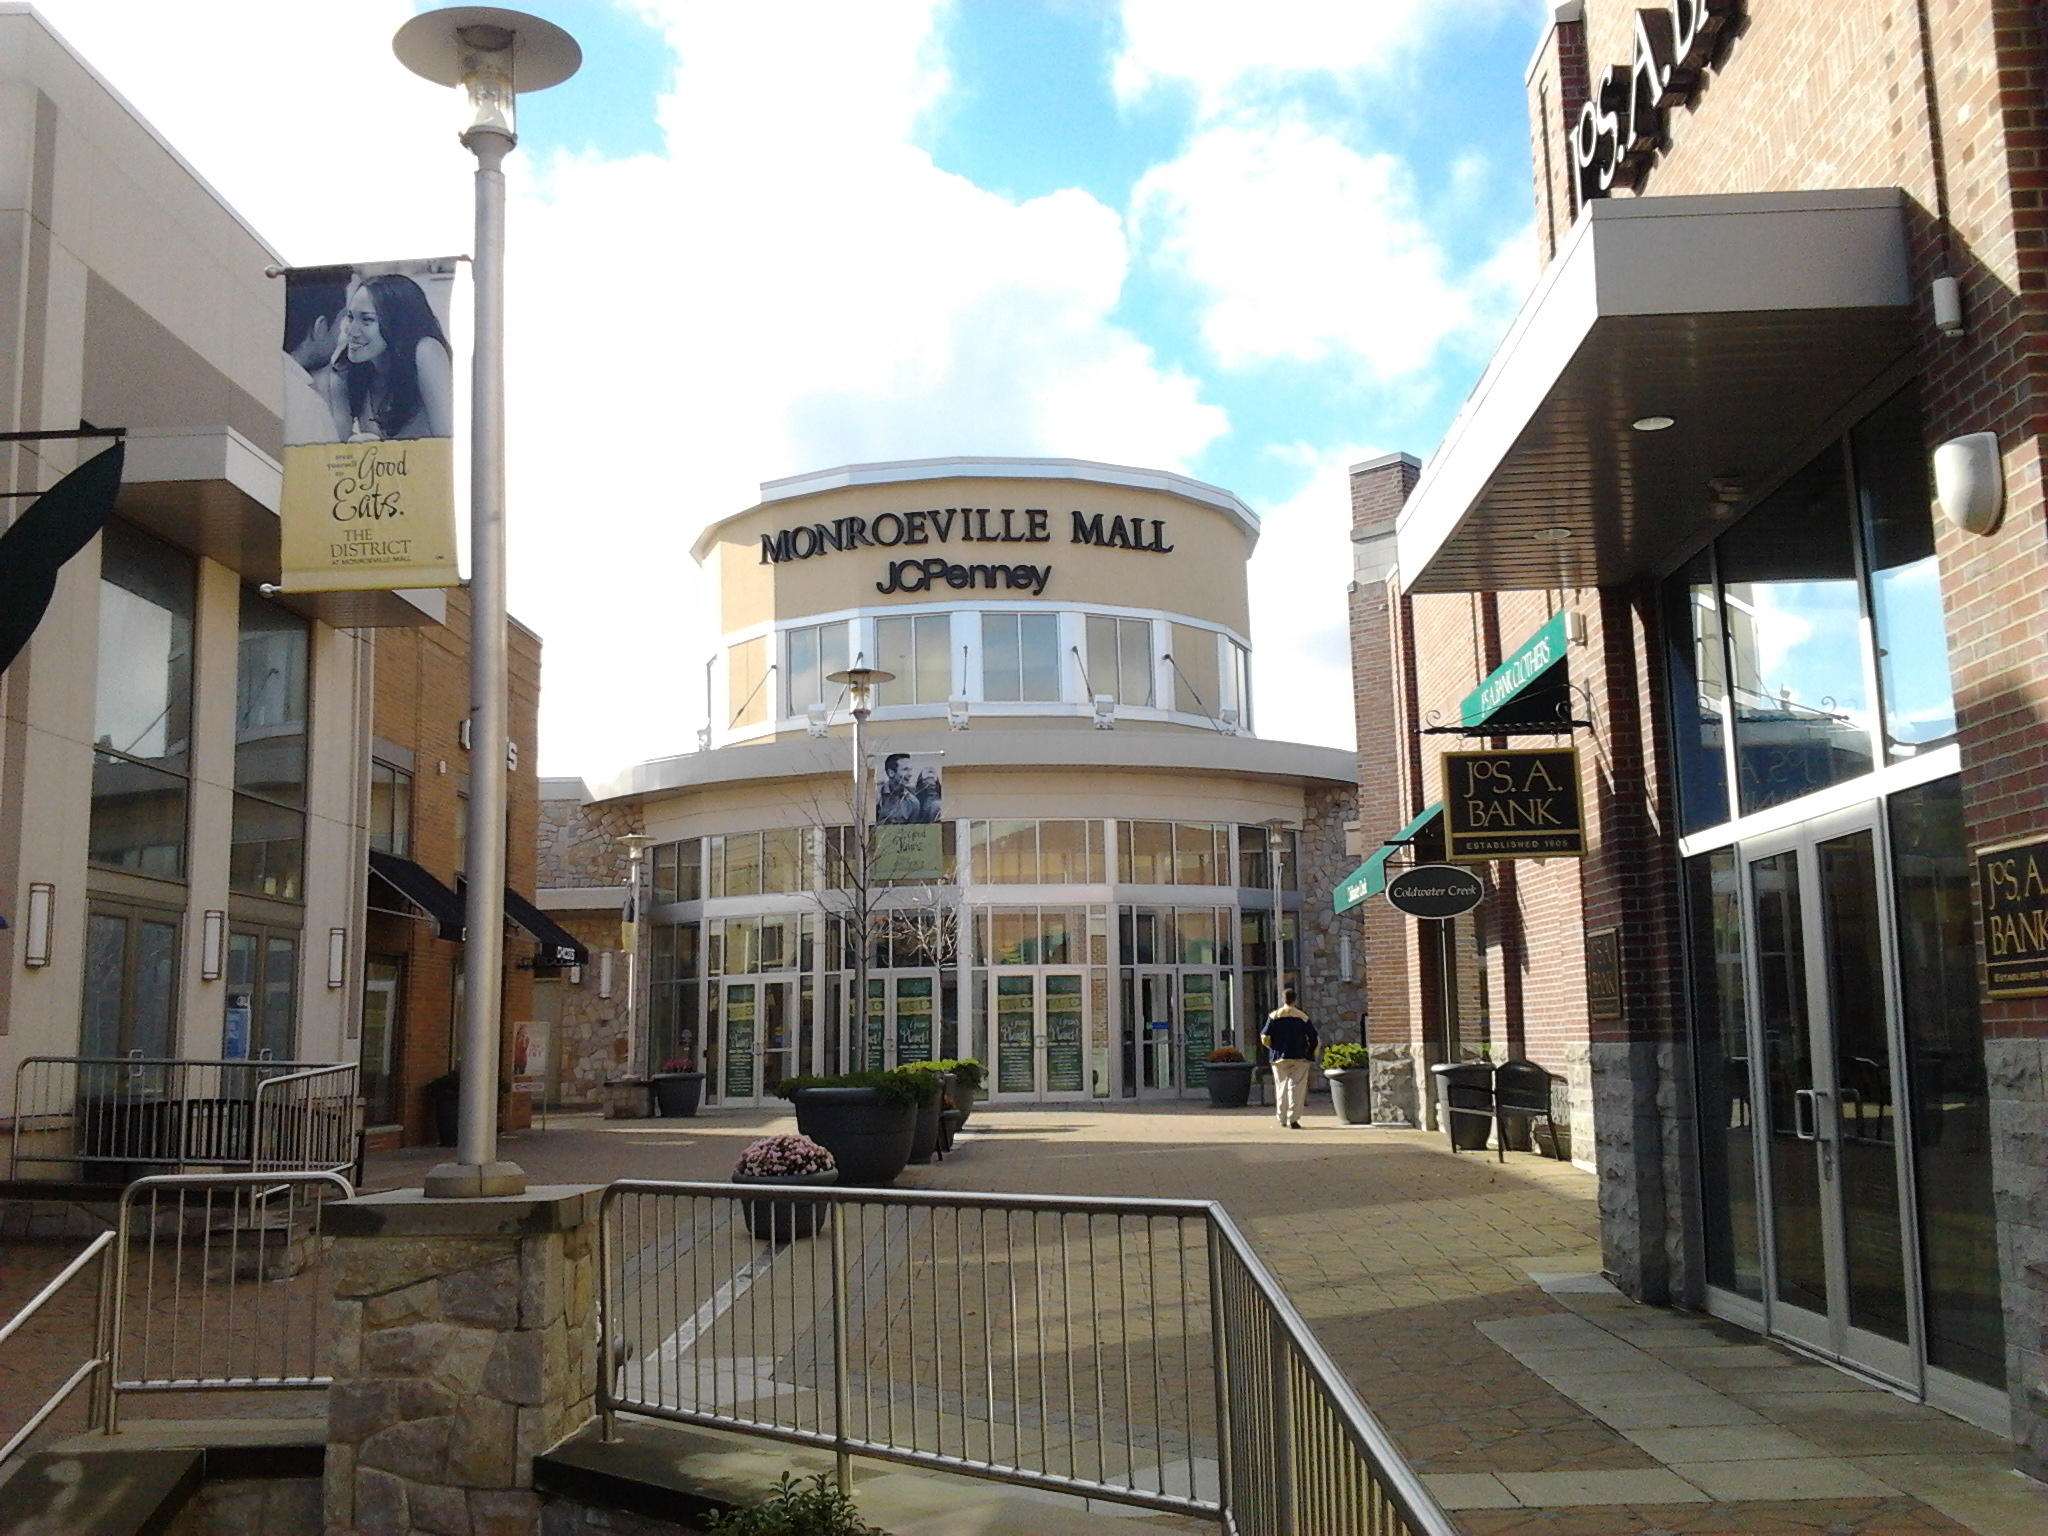 """Entrance to the Monroeville Mall, courtesy of """"Avicennasis"""""""